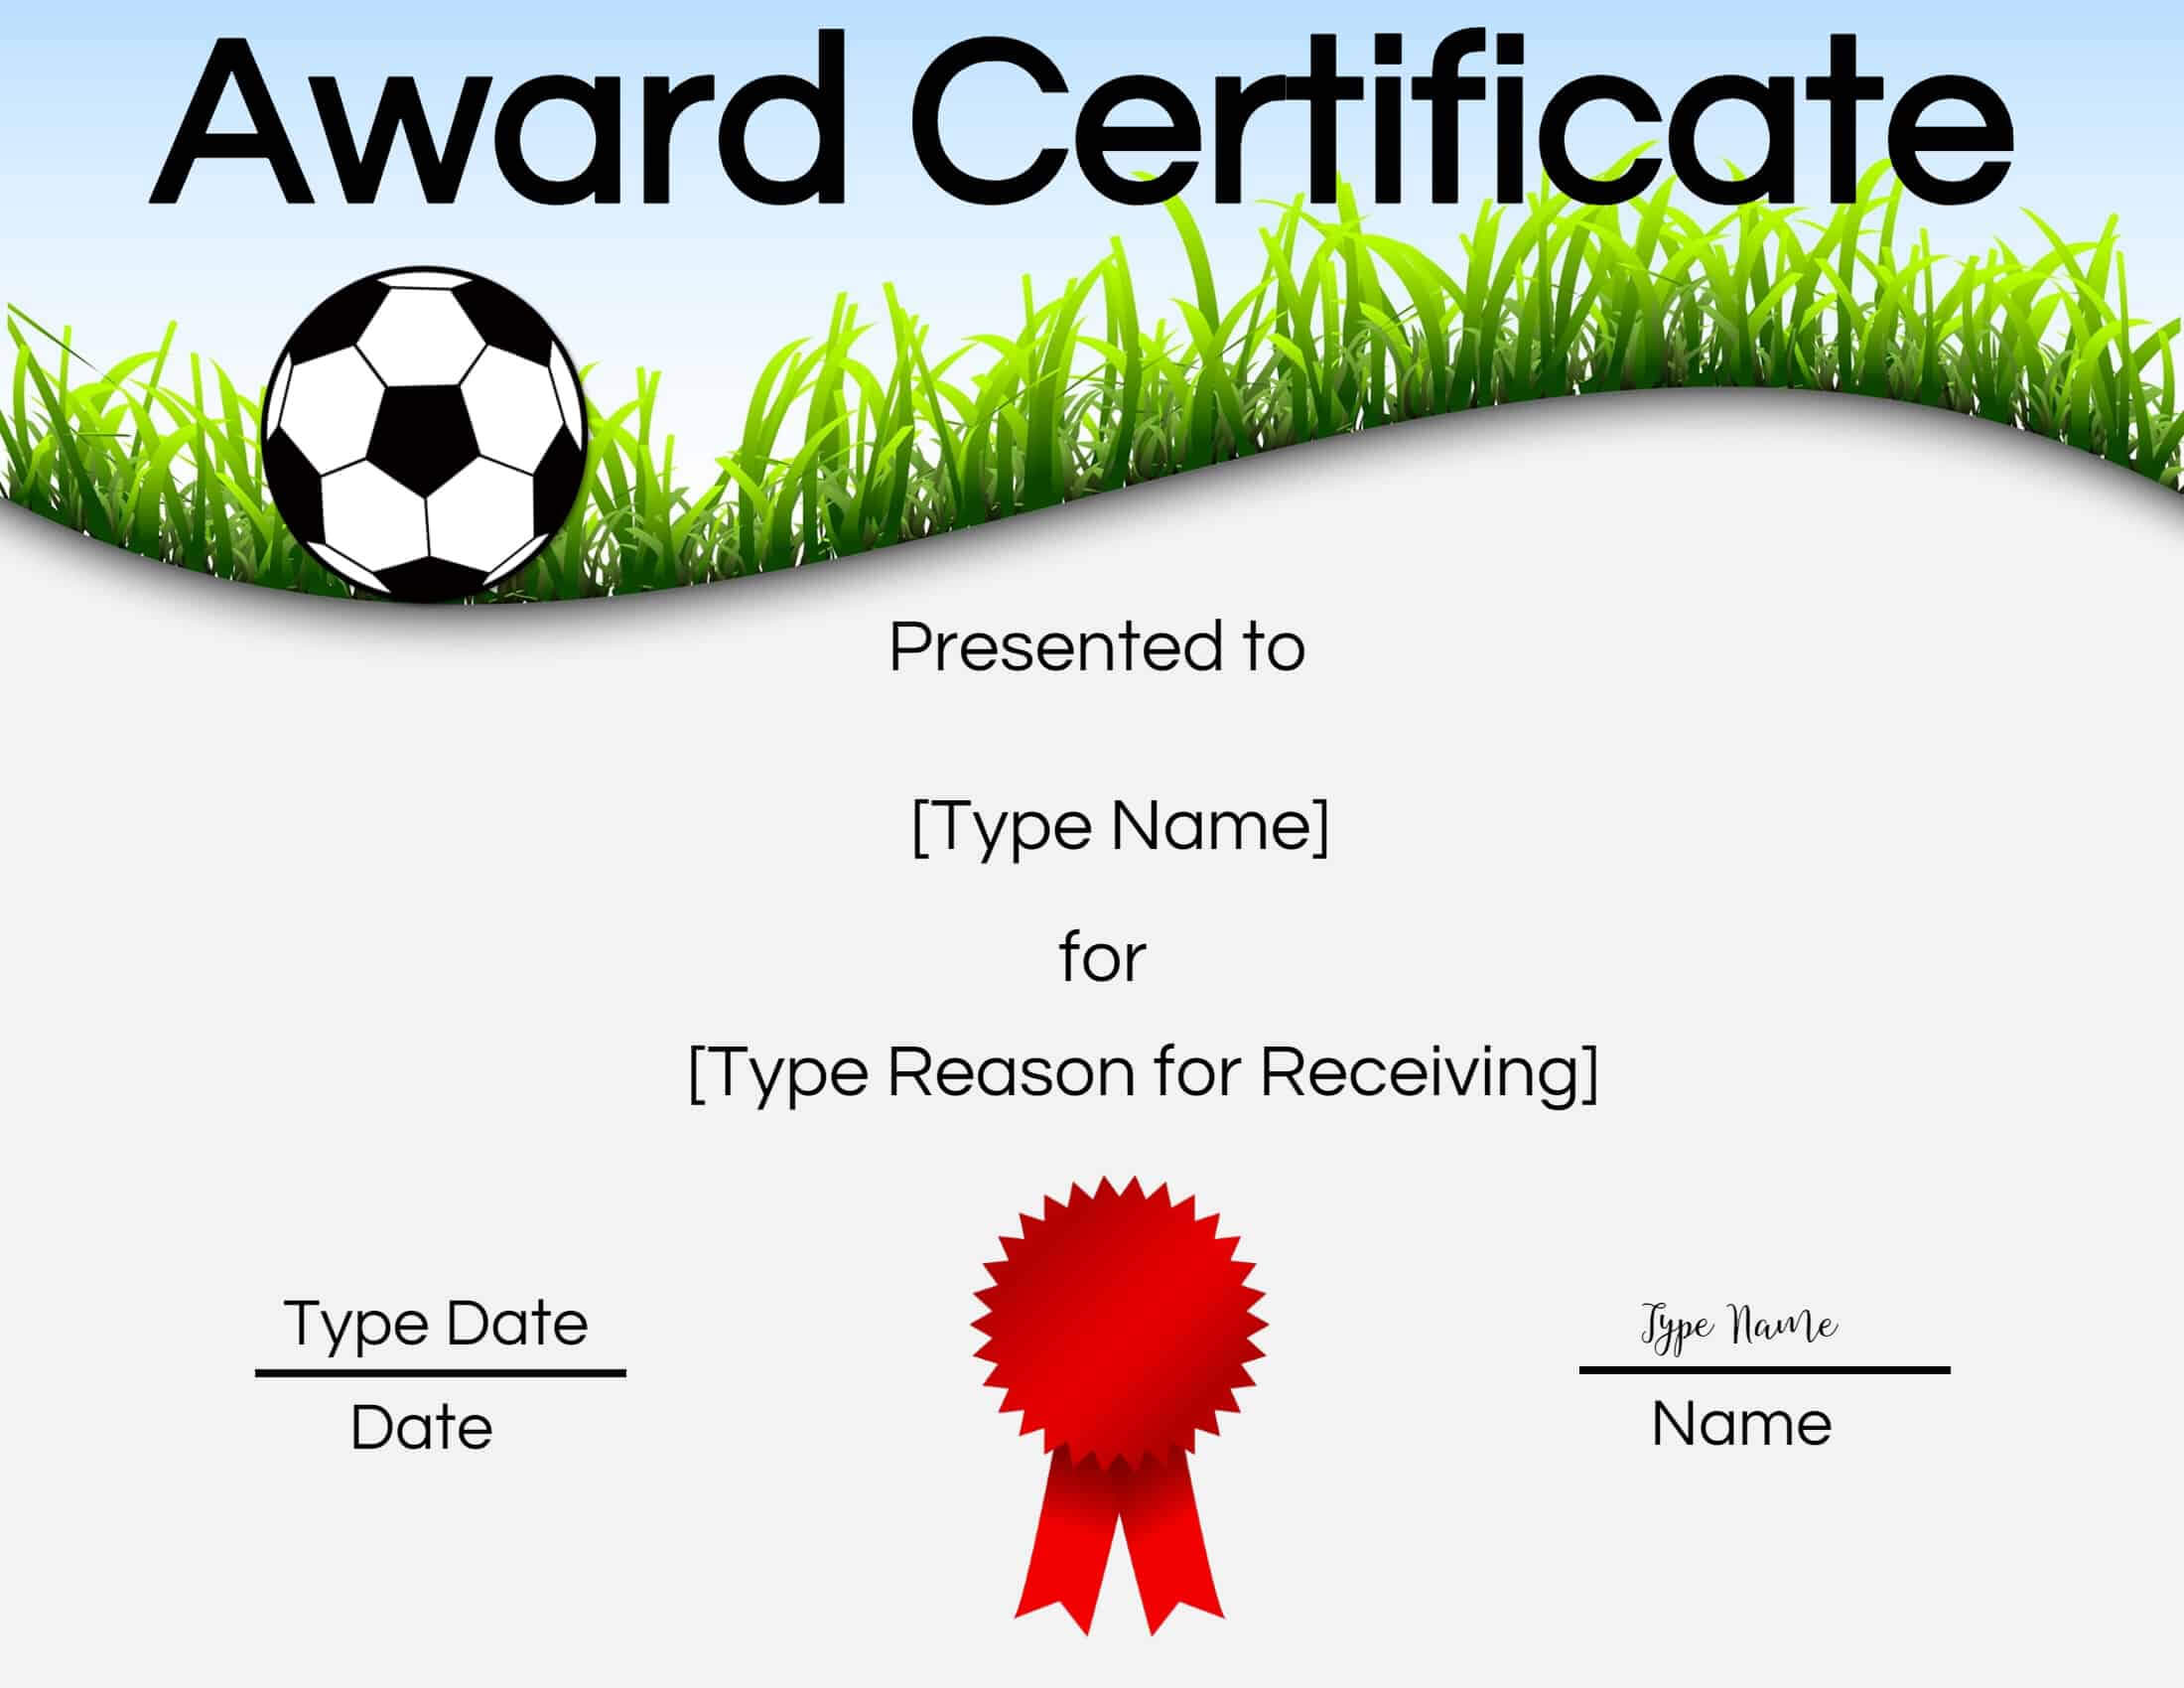 Free Soccer Certificate Maker   Edit Online And Print At Home inside Soccer Certificate Templates For Word